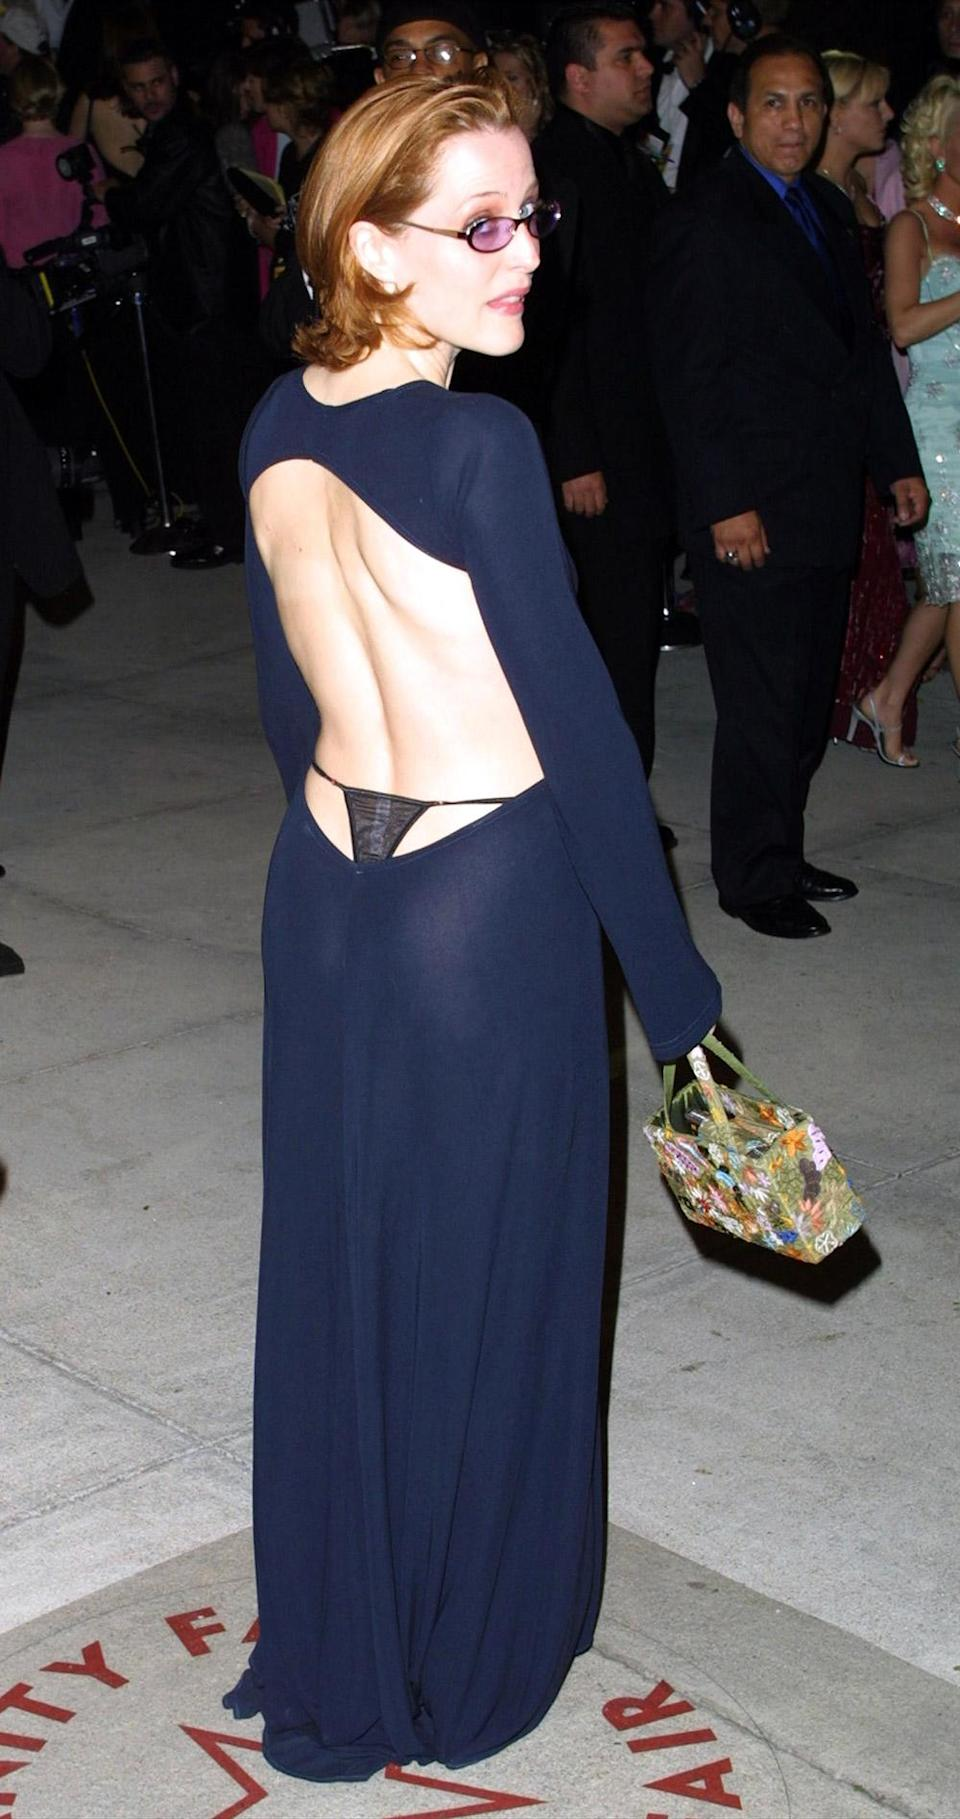 <p>If 'Daring Fashion Moves' was the name of the game, Gillian Anderson came to compete. She wore a backless dress to the Vanity Fair post-Oscar party, and used her underwear as an accessory. </p>